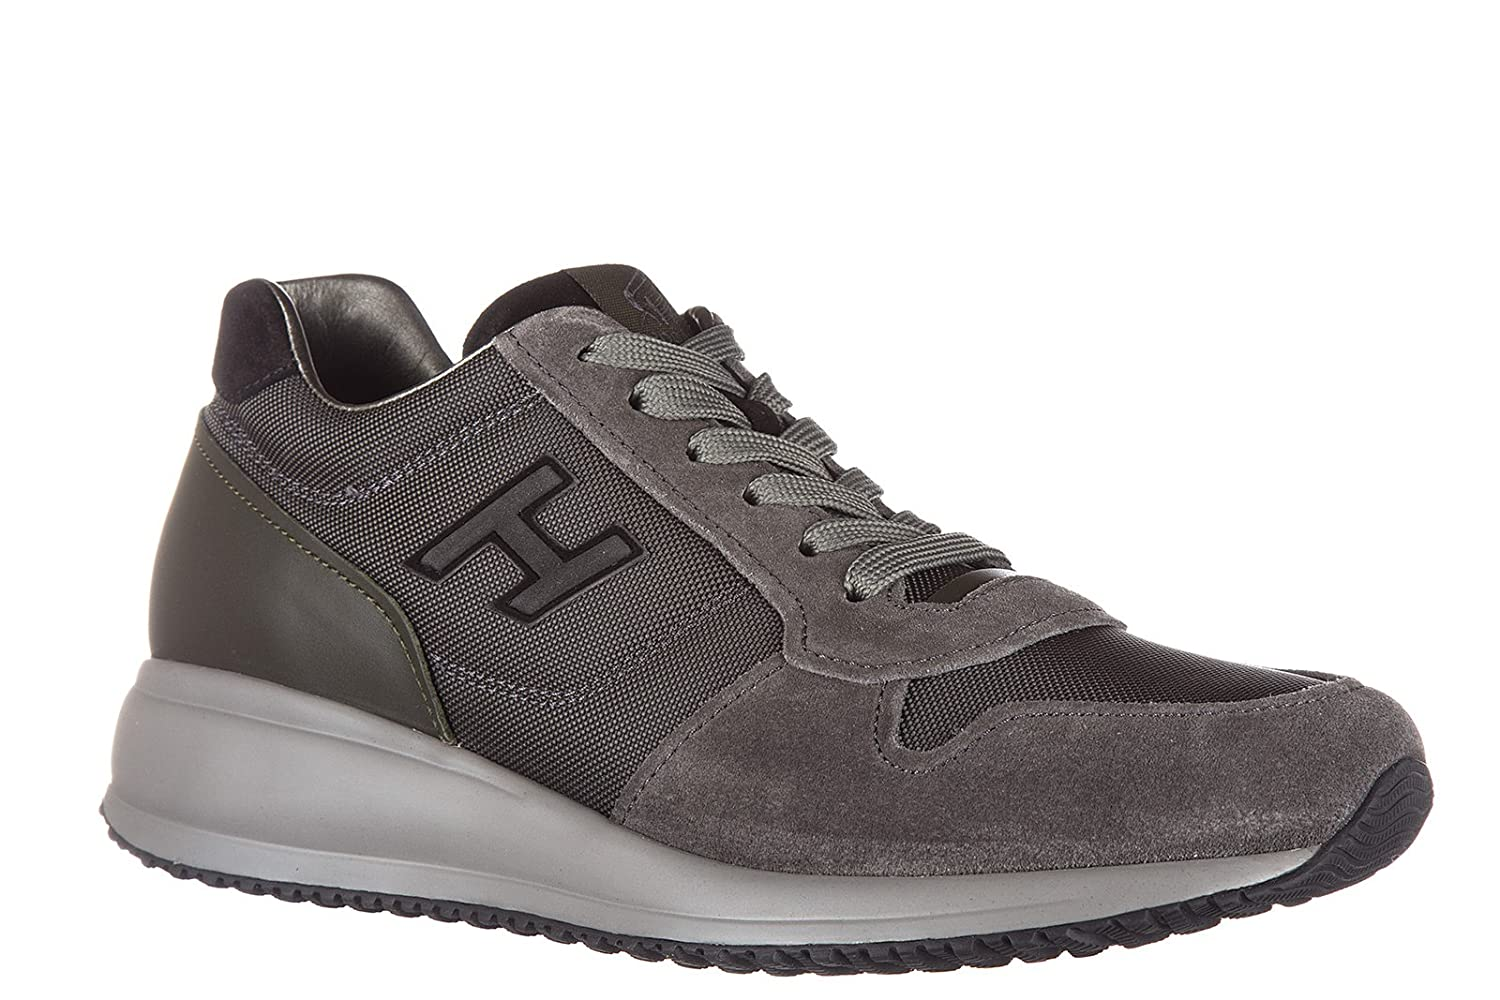 baaa21a2d5b2 Hogan Men s Scarpe Sneakers Uomo Camoscio nuove Interactive N2 Trainers Grey  Grey Grey Size  6  Amazon.co.uk  Shoes   Bags